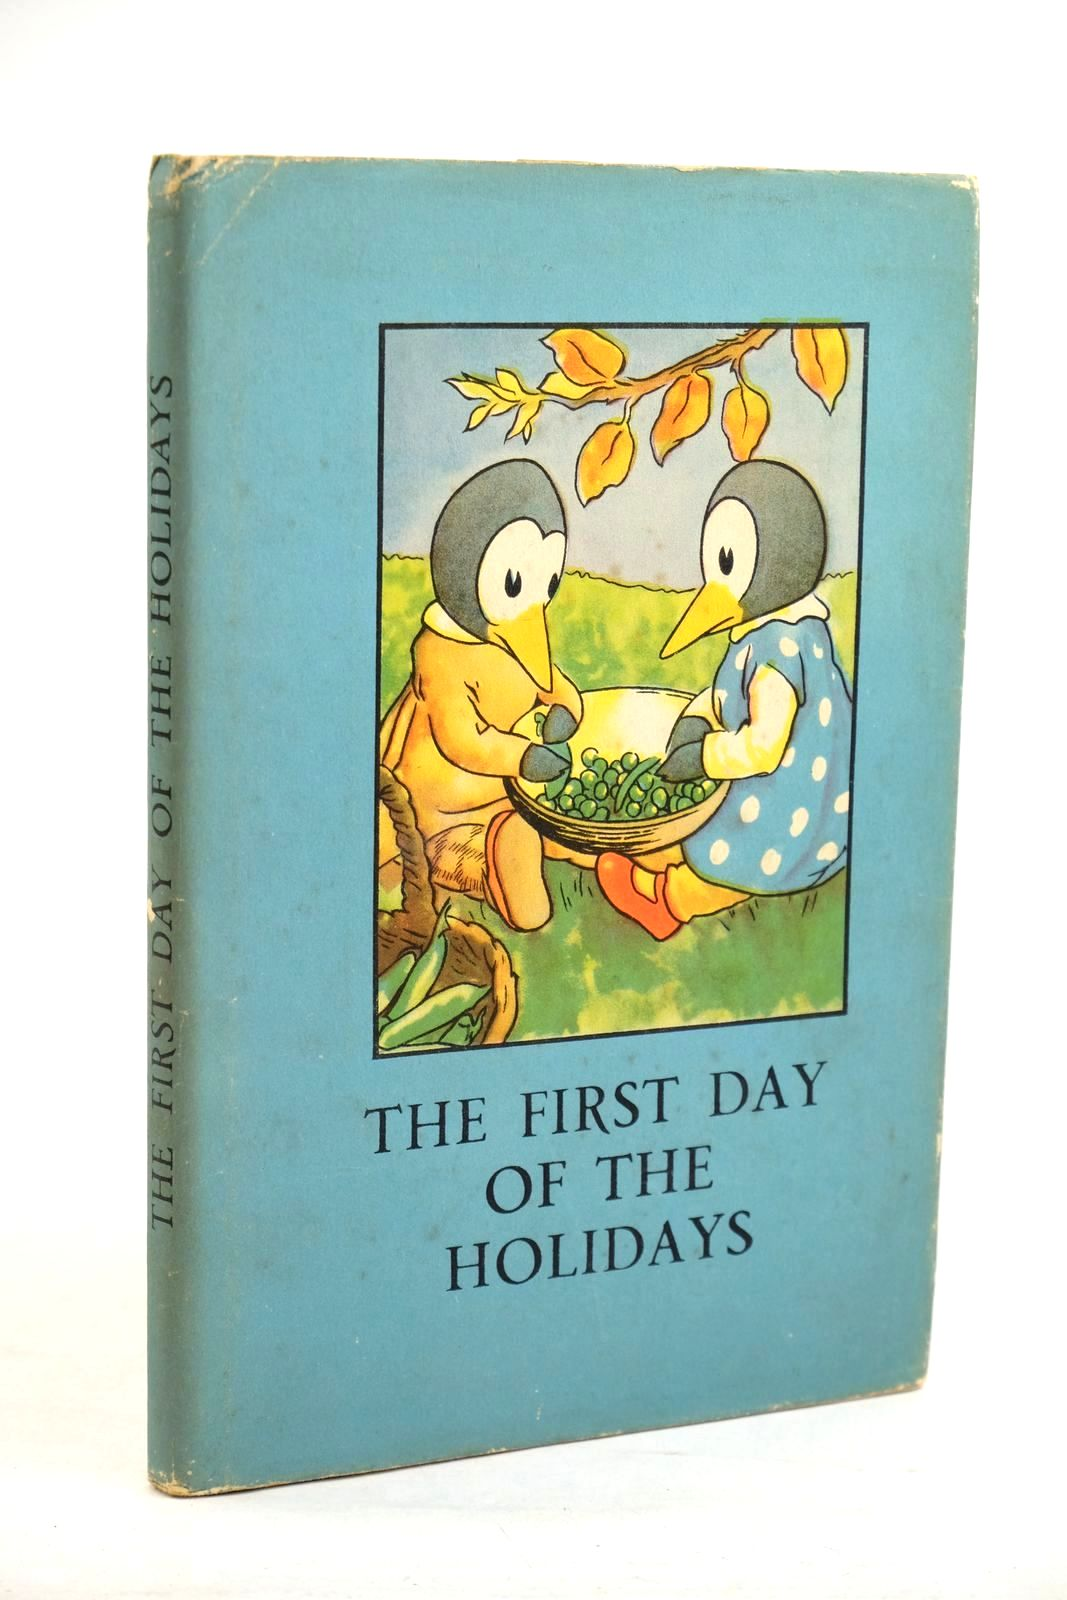 Photo of THE FIRST DAY OF THE HOLIDAYS written by Macgregor, A.J. Perring, W. illustrated by Macgregor, A.J. published by Wills & Hepworth Ltd. (STOCK CODE: 1320454)  for sale by Stella & Rose's Books